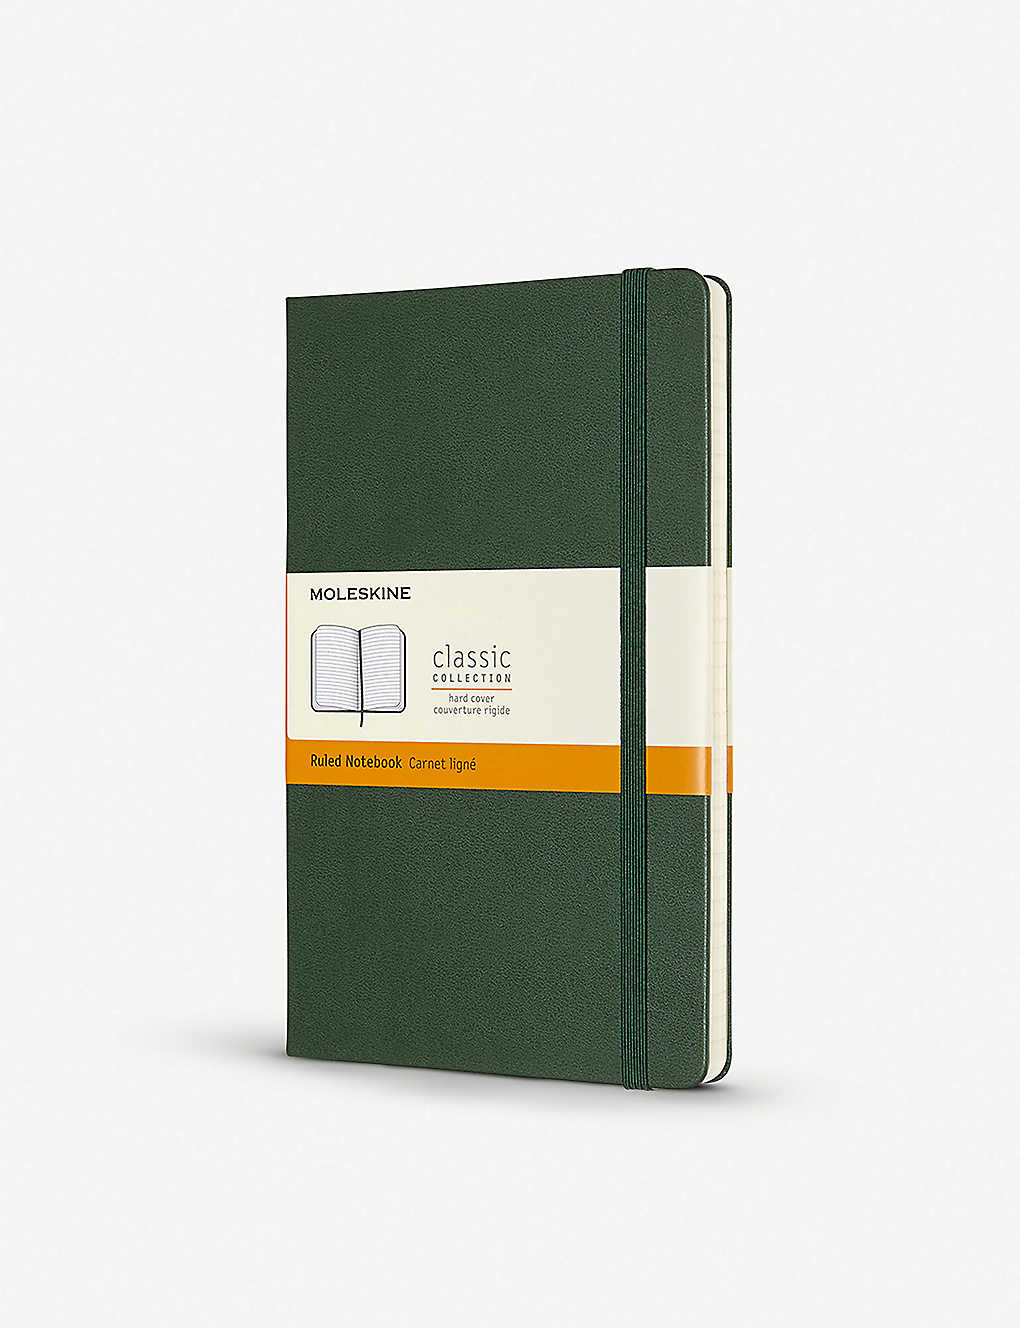 MOLESKINE: Classic collection large ruled hardcover notebook